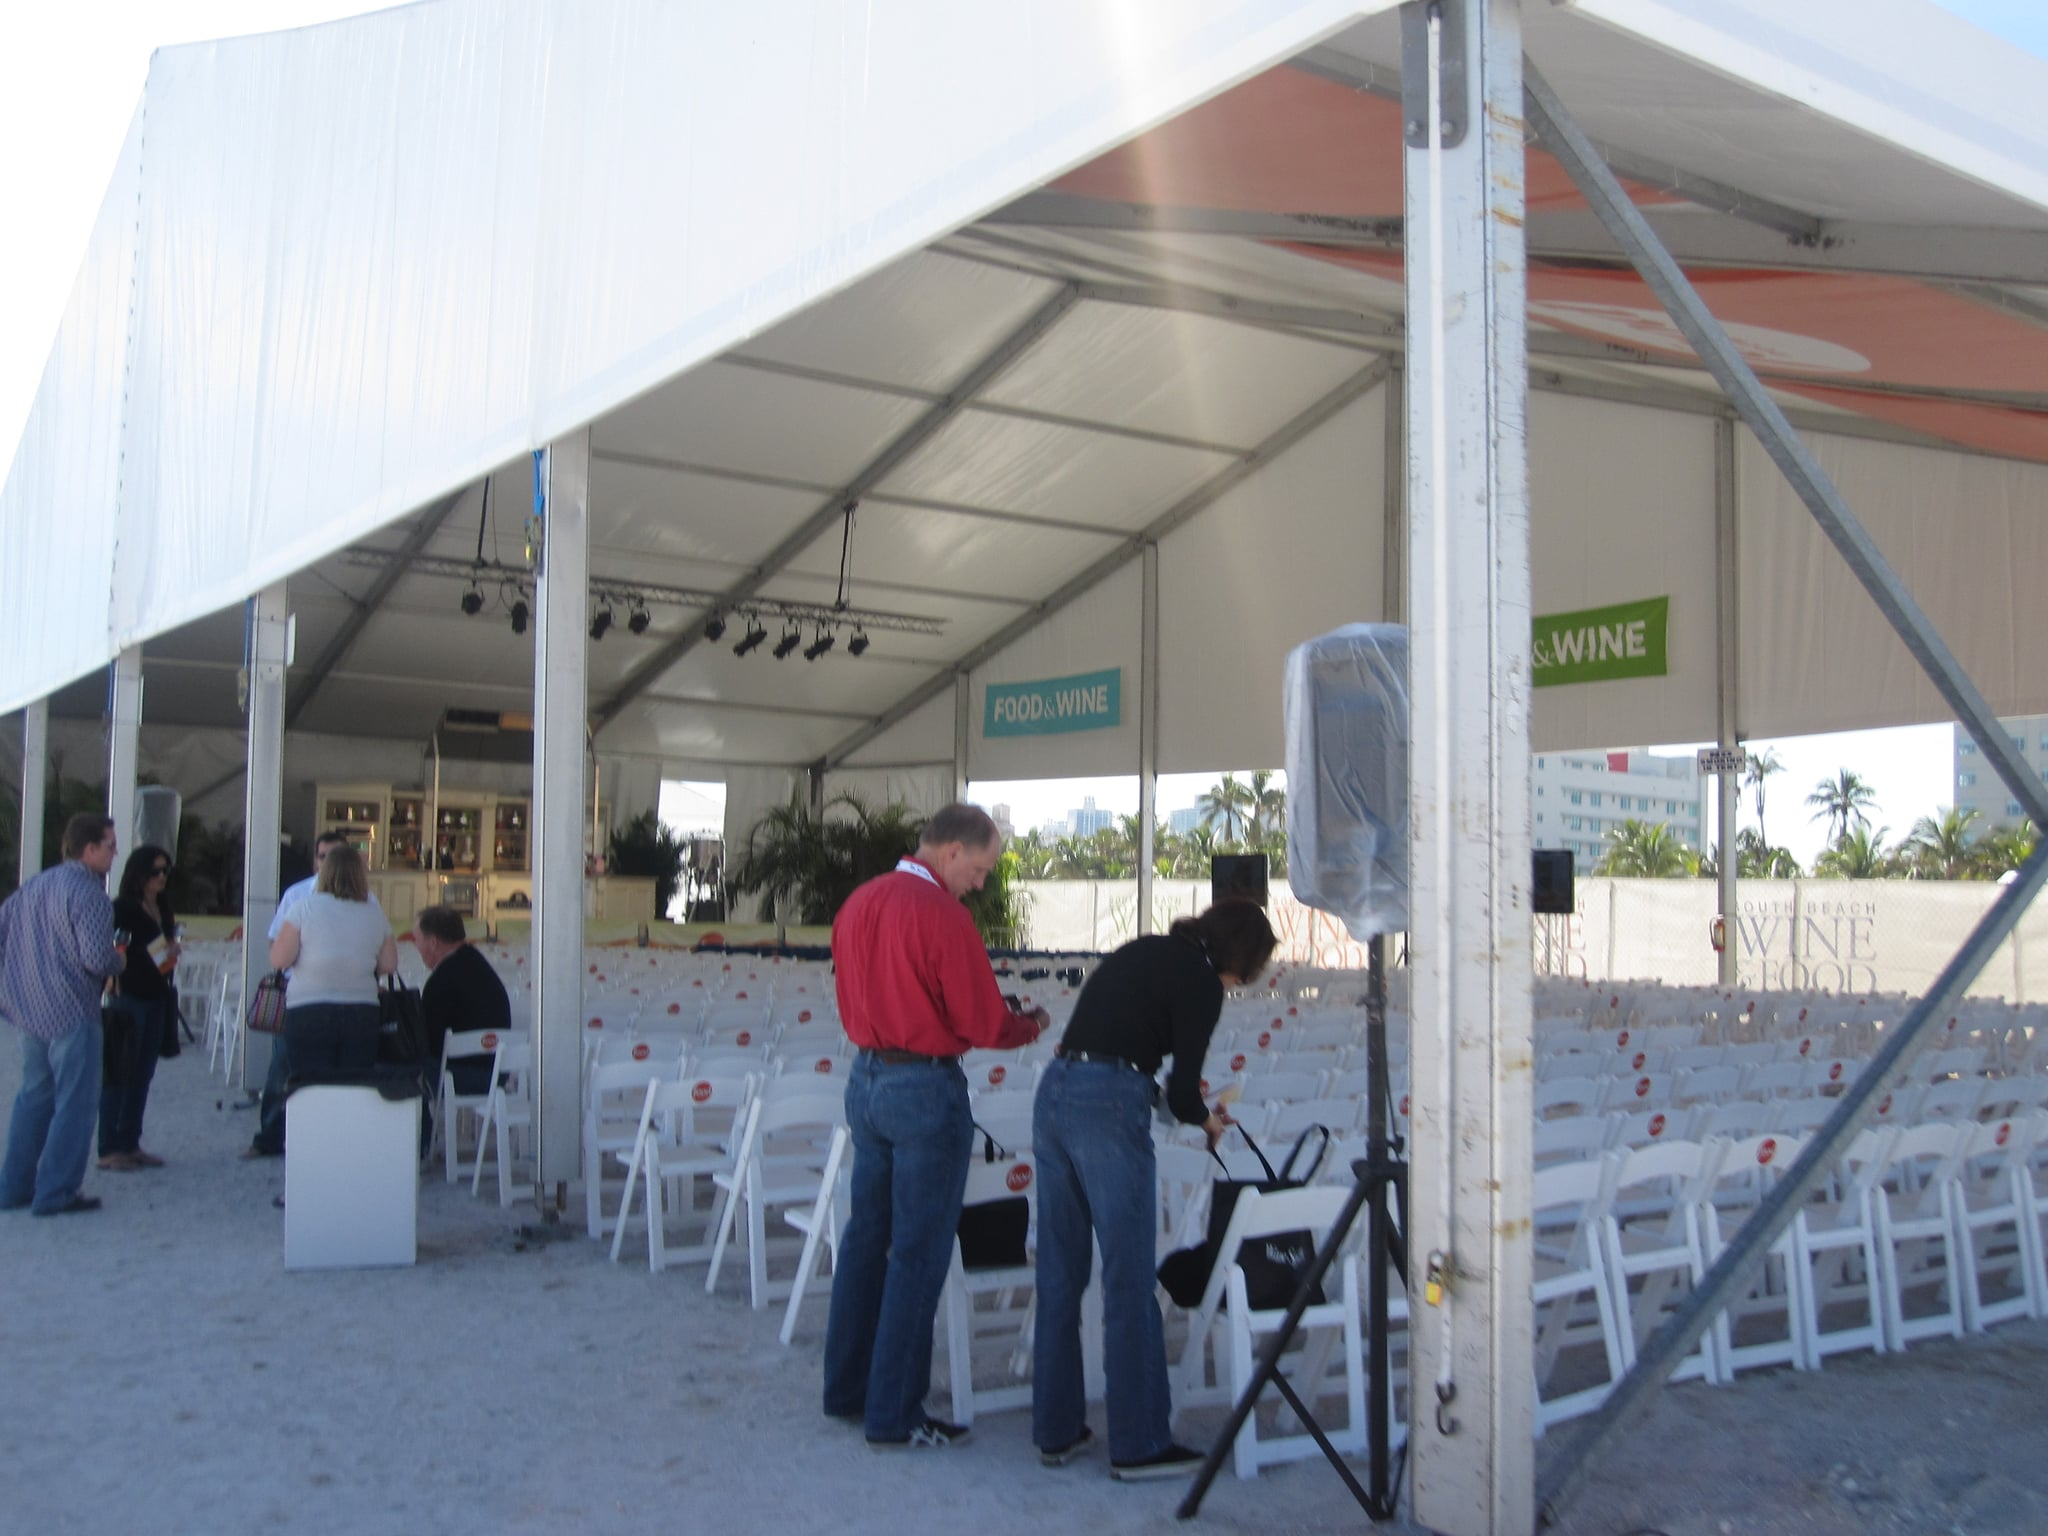 Upon entering the festival, guests are greeted with a huge demo stage.